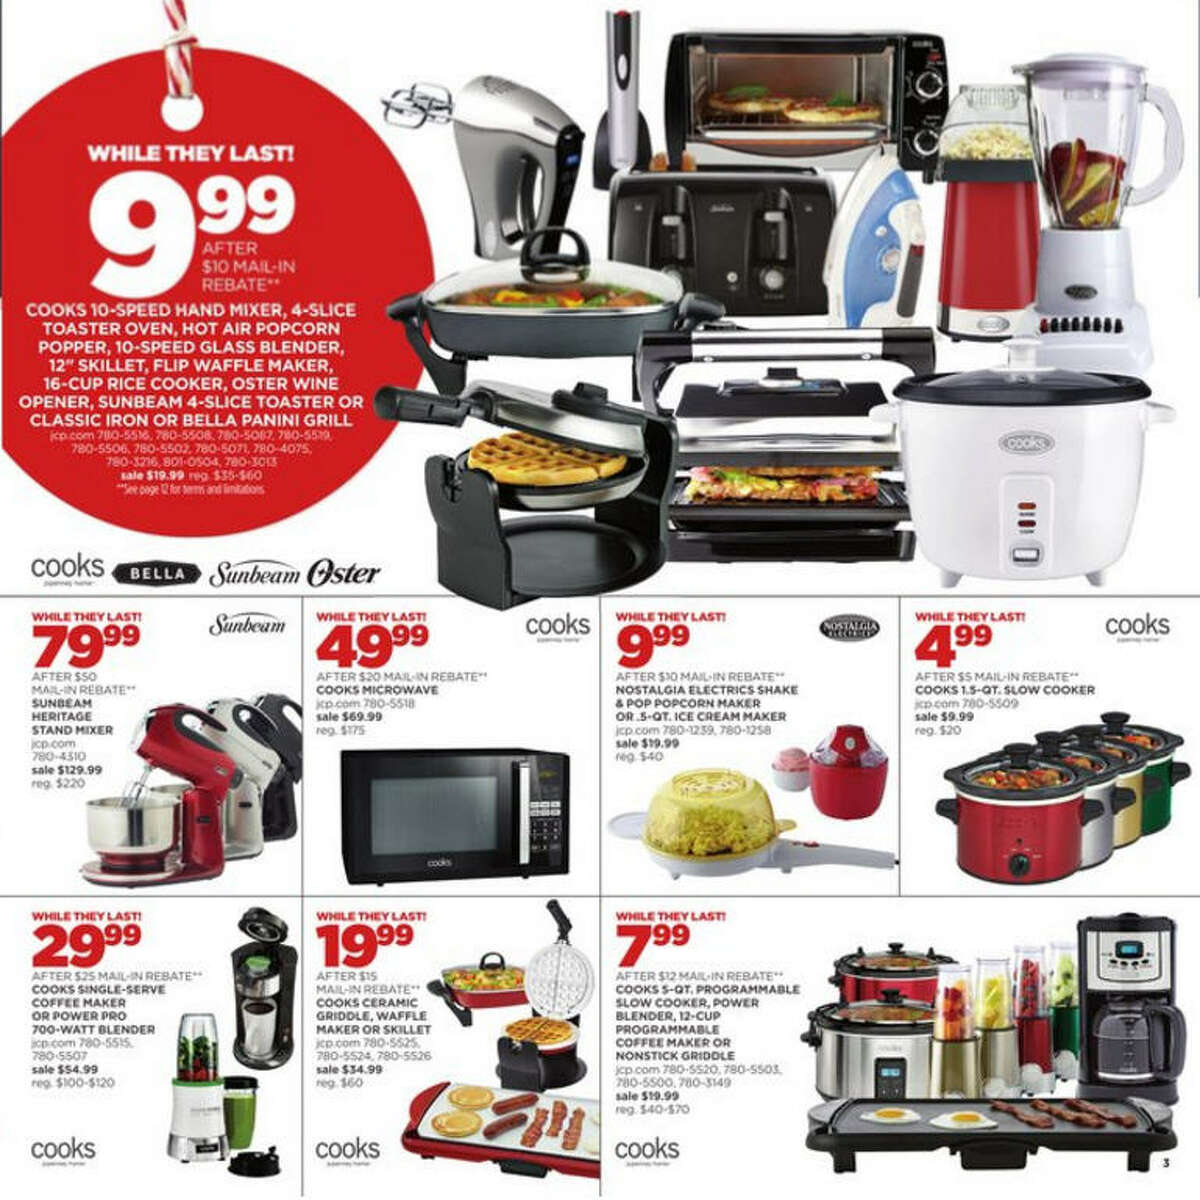 JC Penney Black Friday Ads - 2015 (More Black Friday Deals from Find & Save)